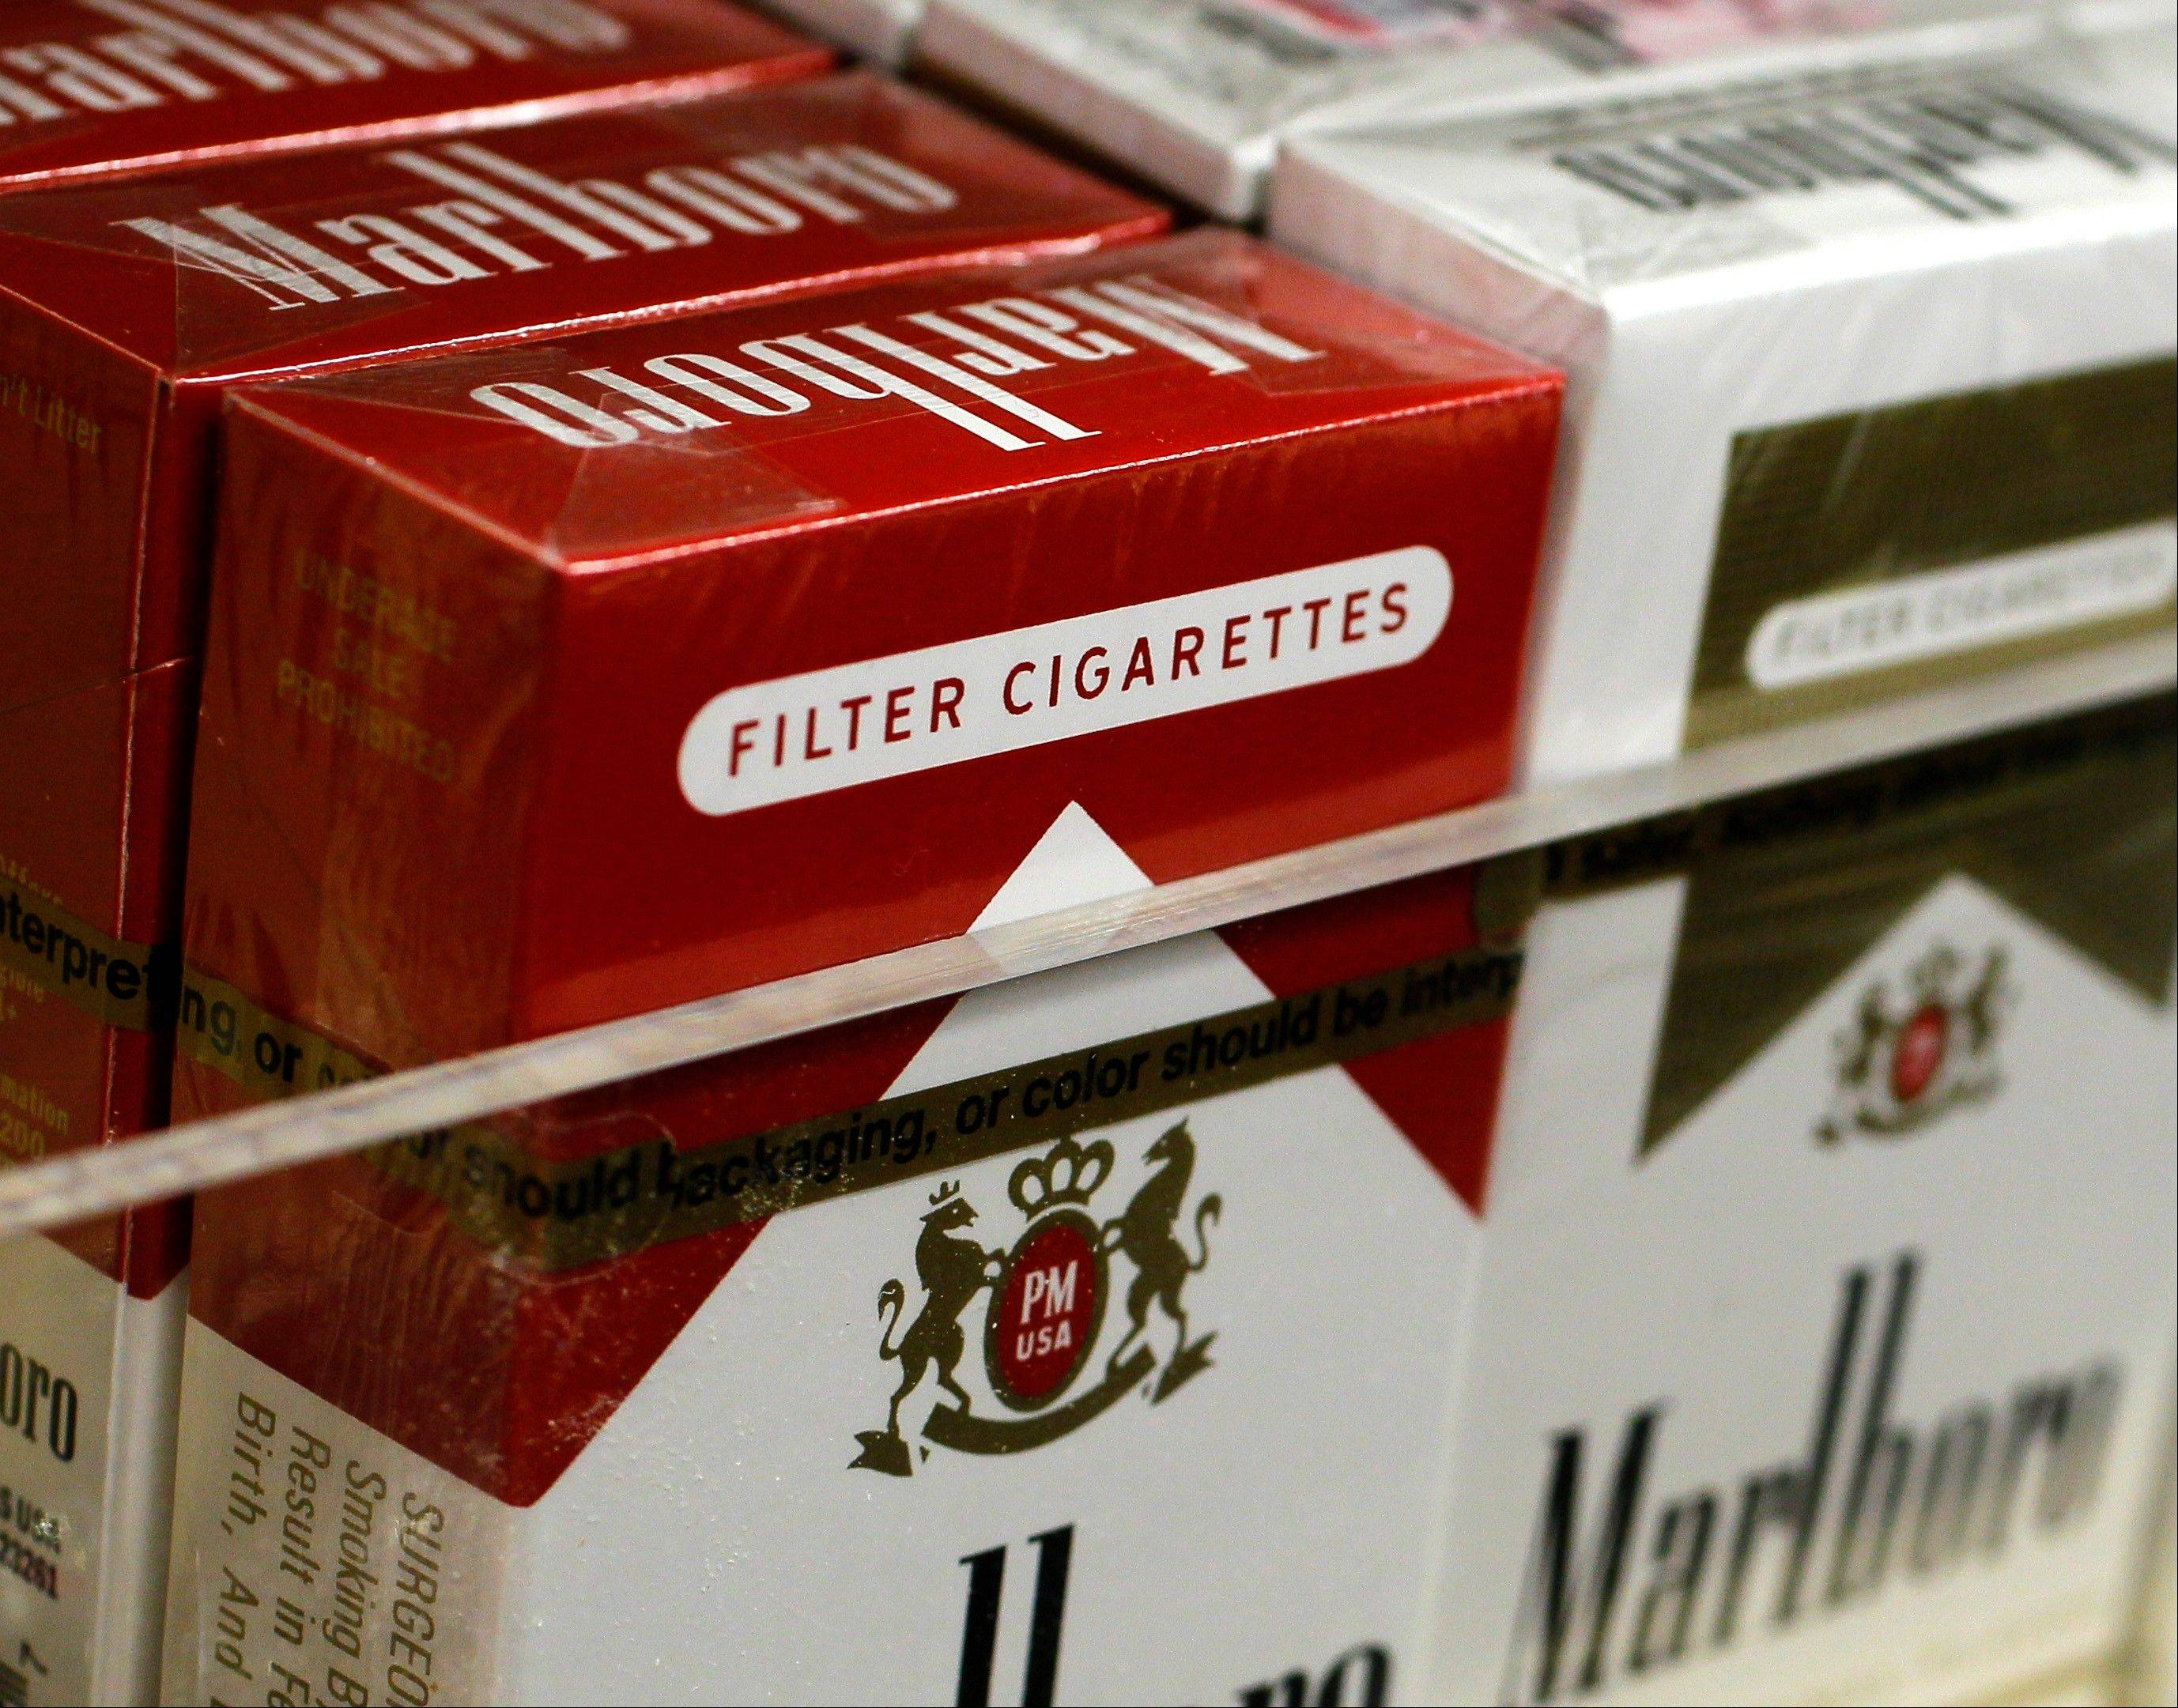 Cigarettes now $1 more per pack in Cook County